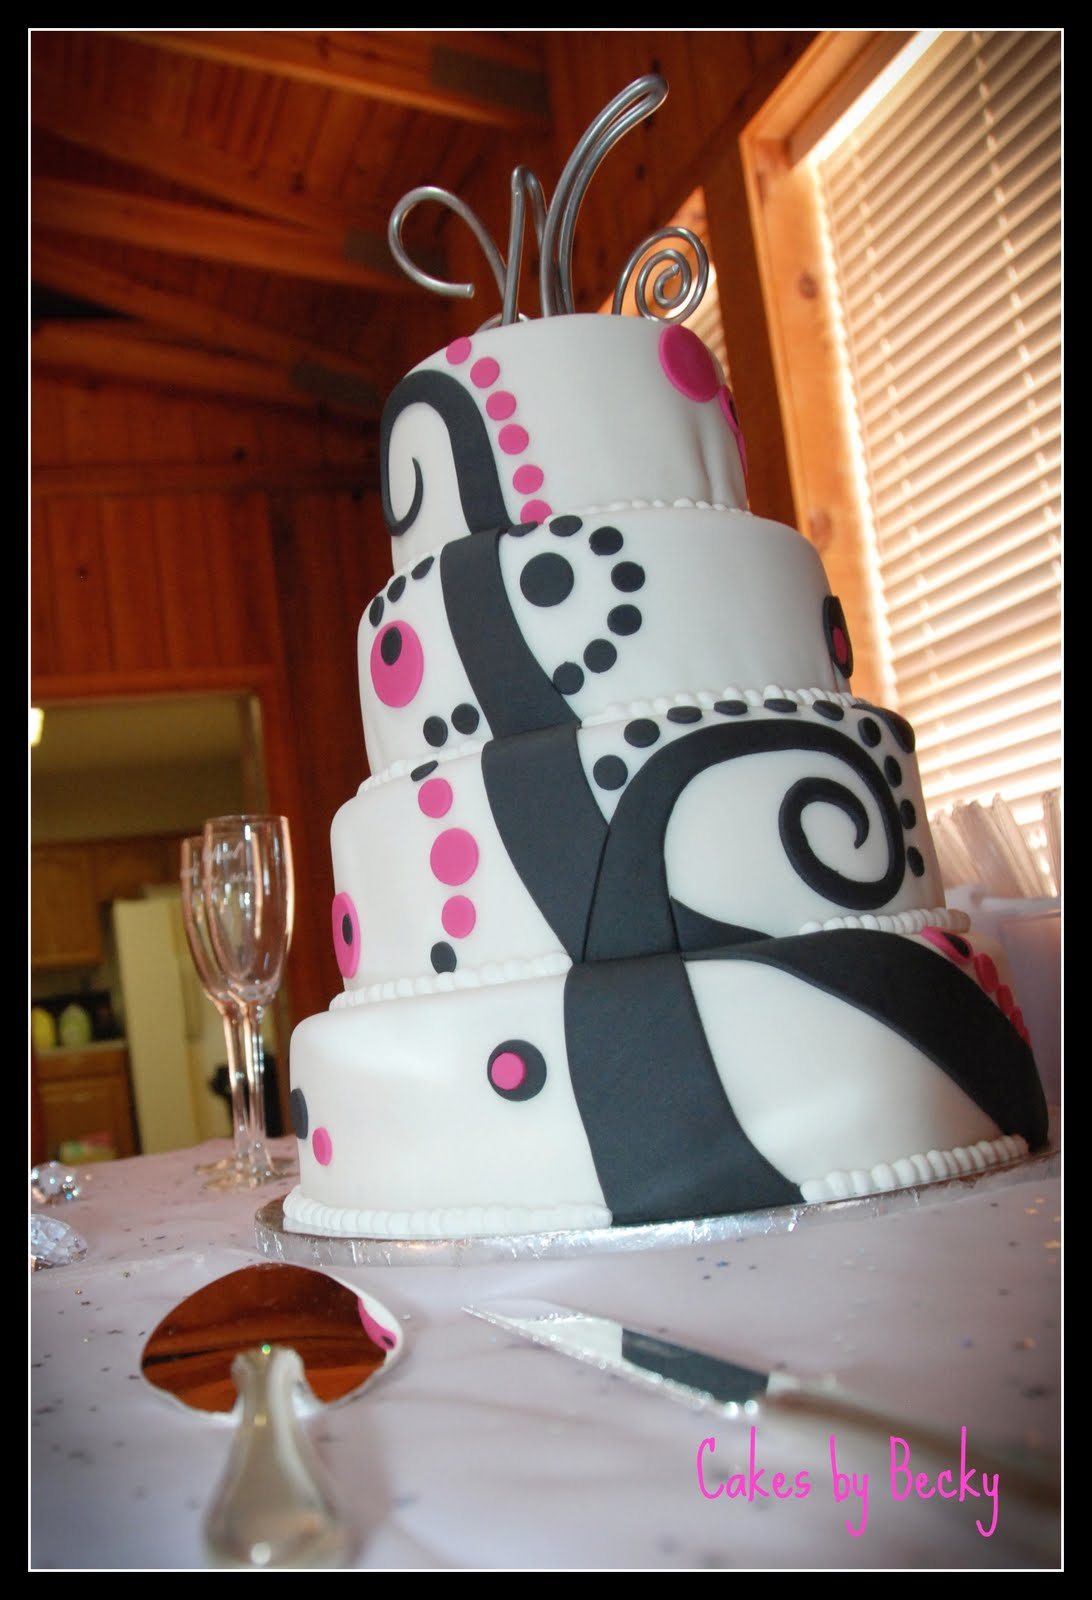 Cakes by Becky: Funky Pink and Black Wedding Cake